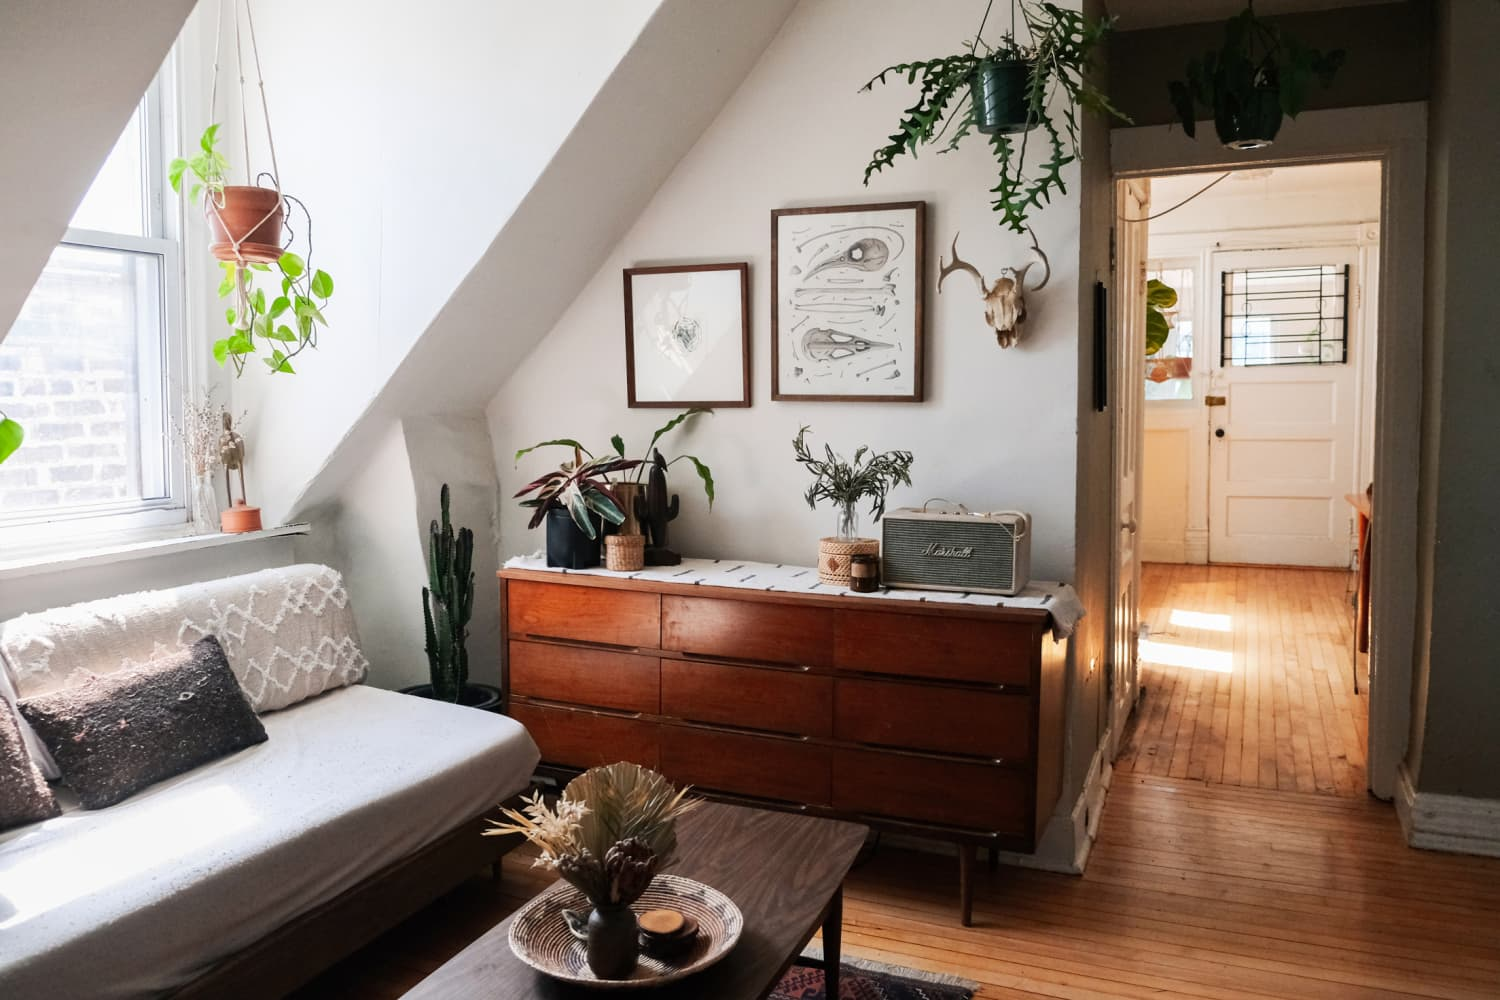 A Small Chicago Apartment Has Skylights in the Kitchen and 70+ Very Happy Houseplants